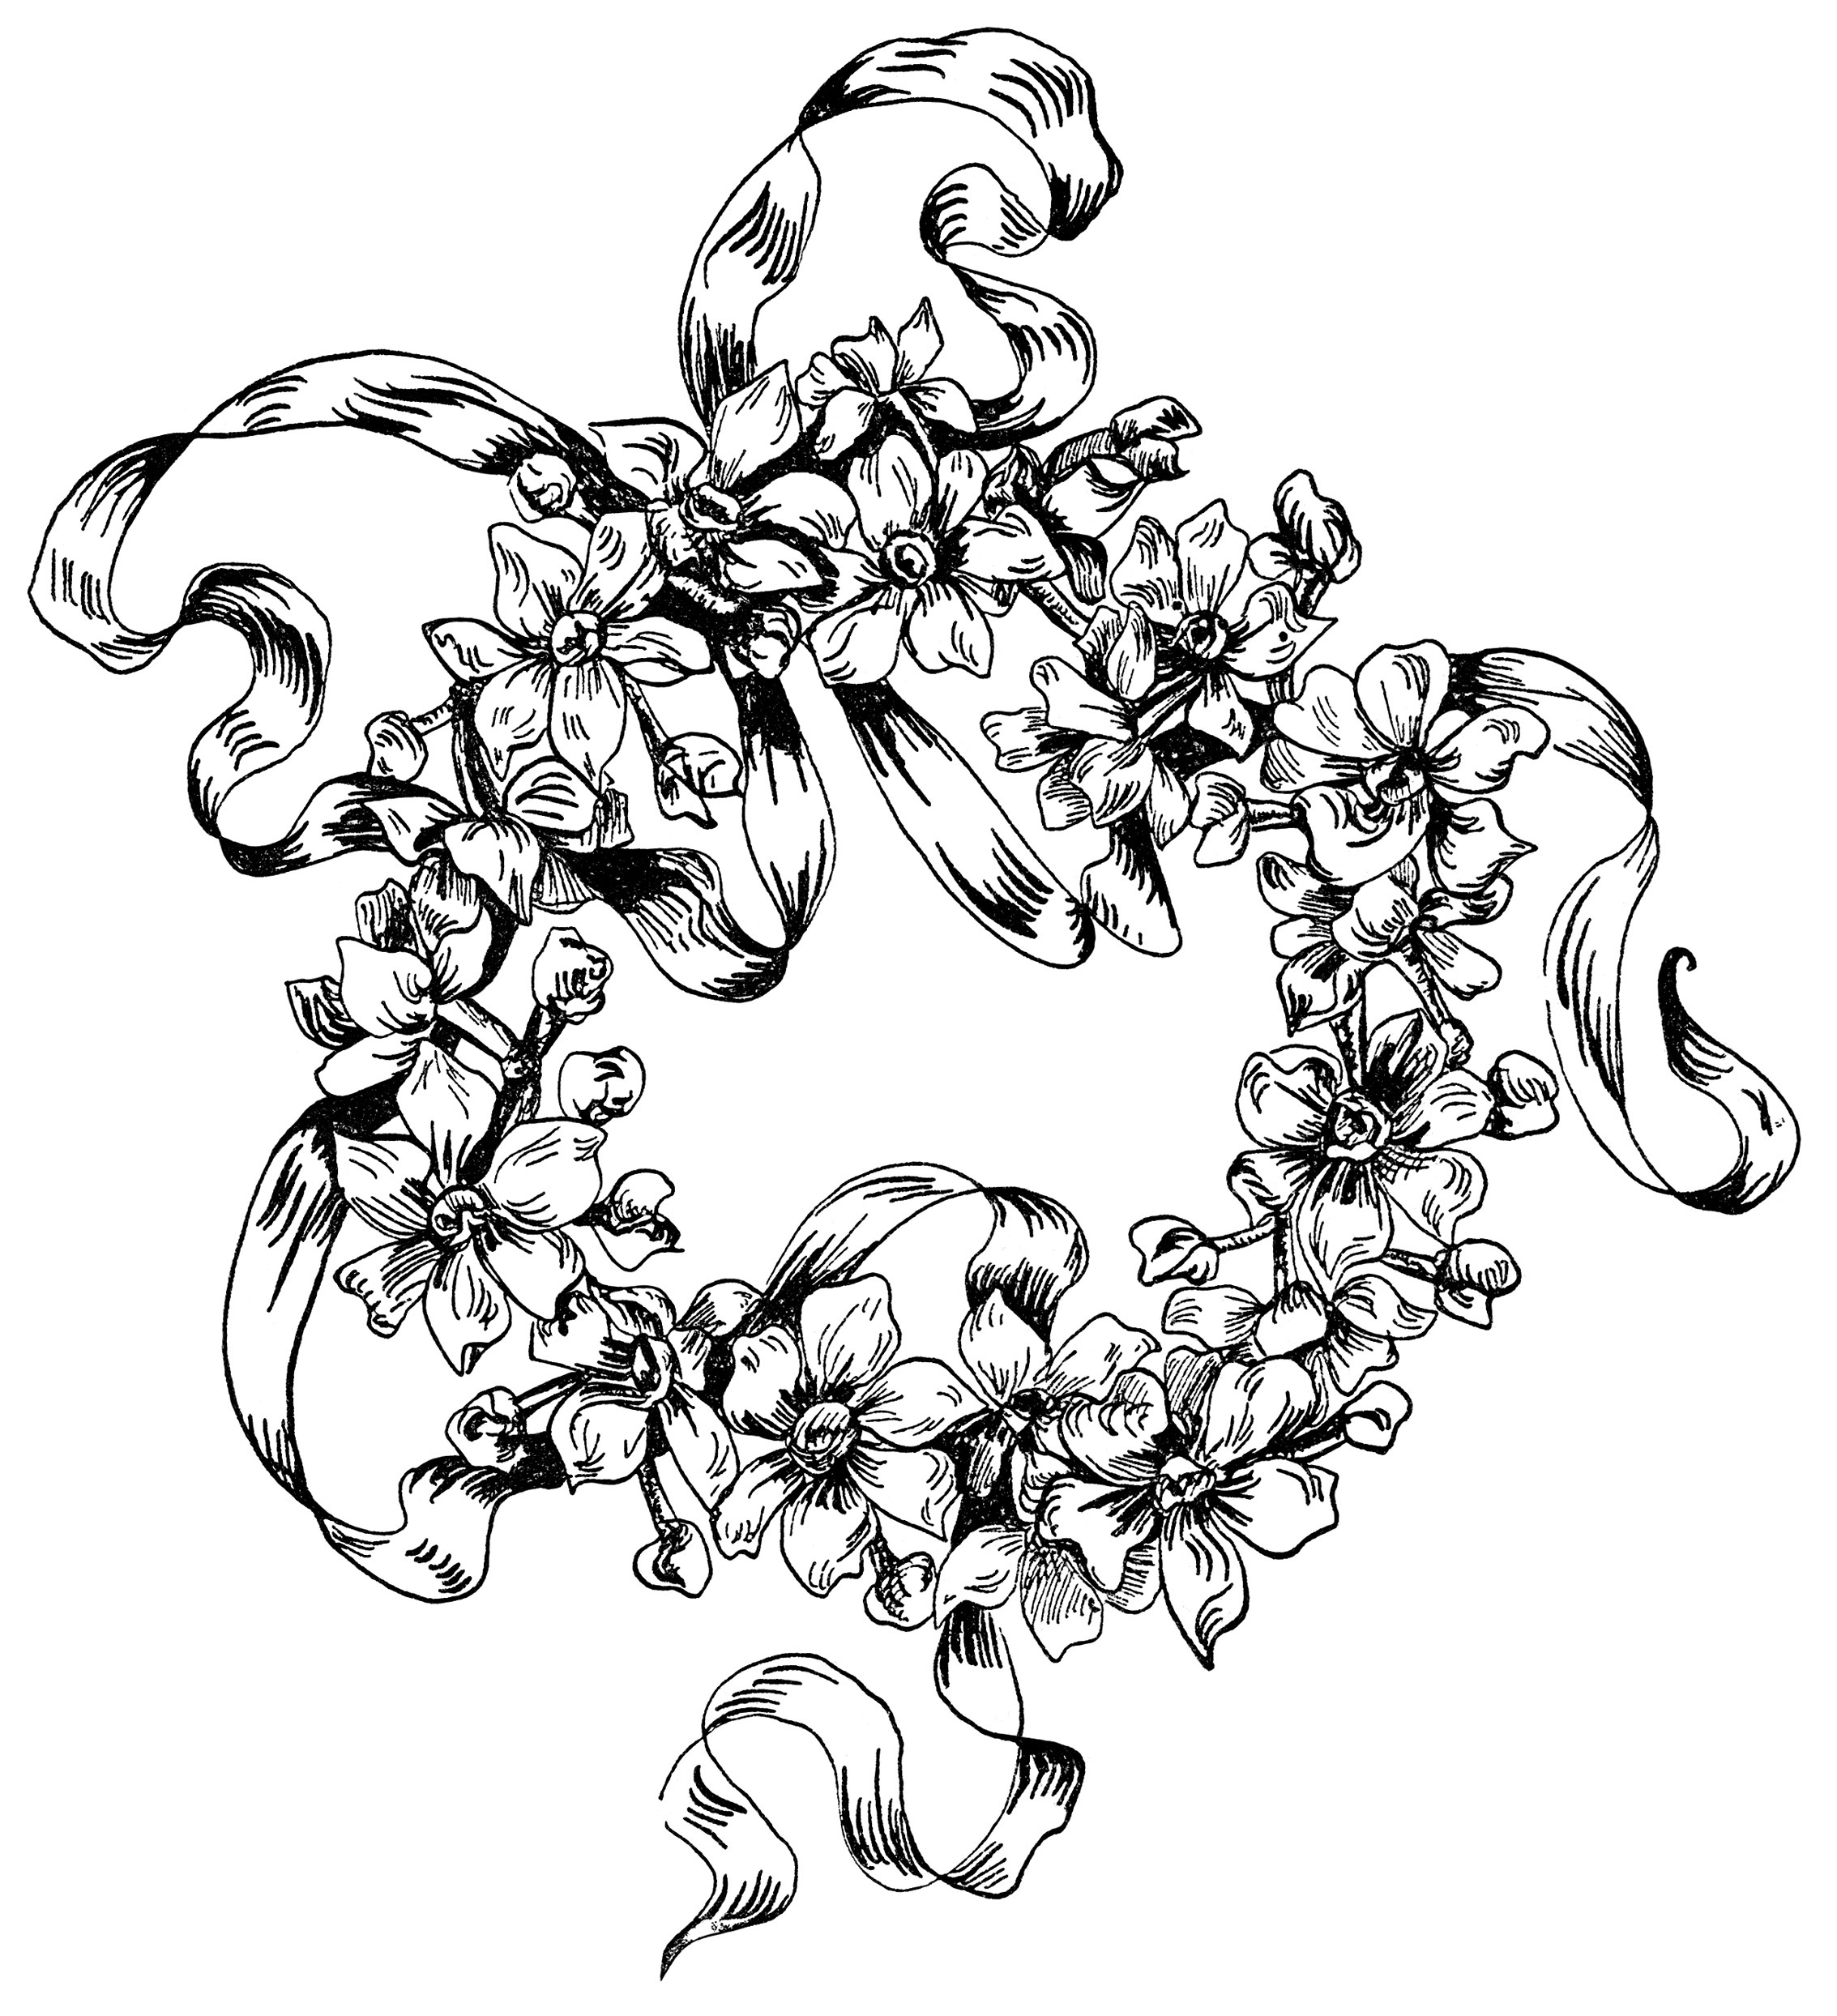 flower design illustration, black and white clipart, ornamental.